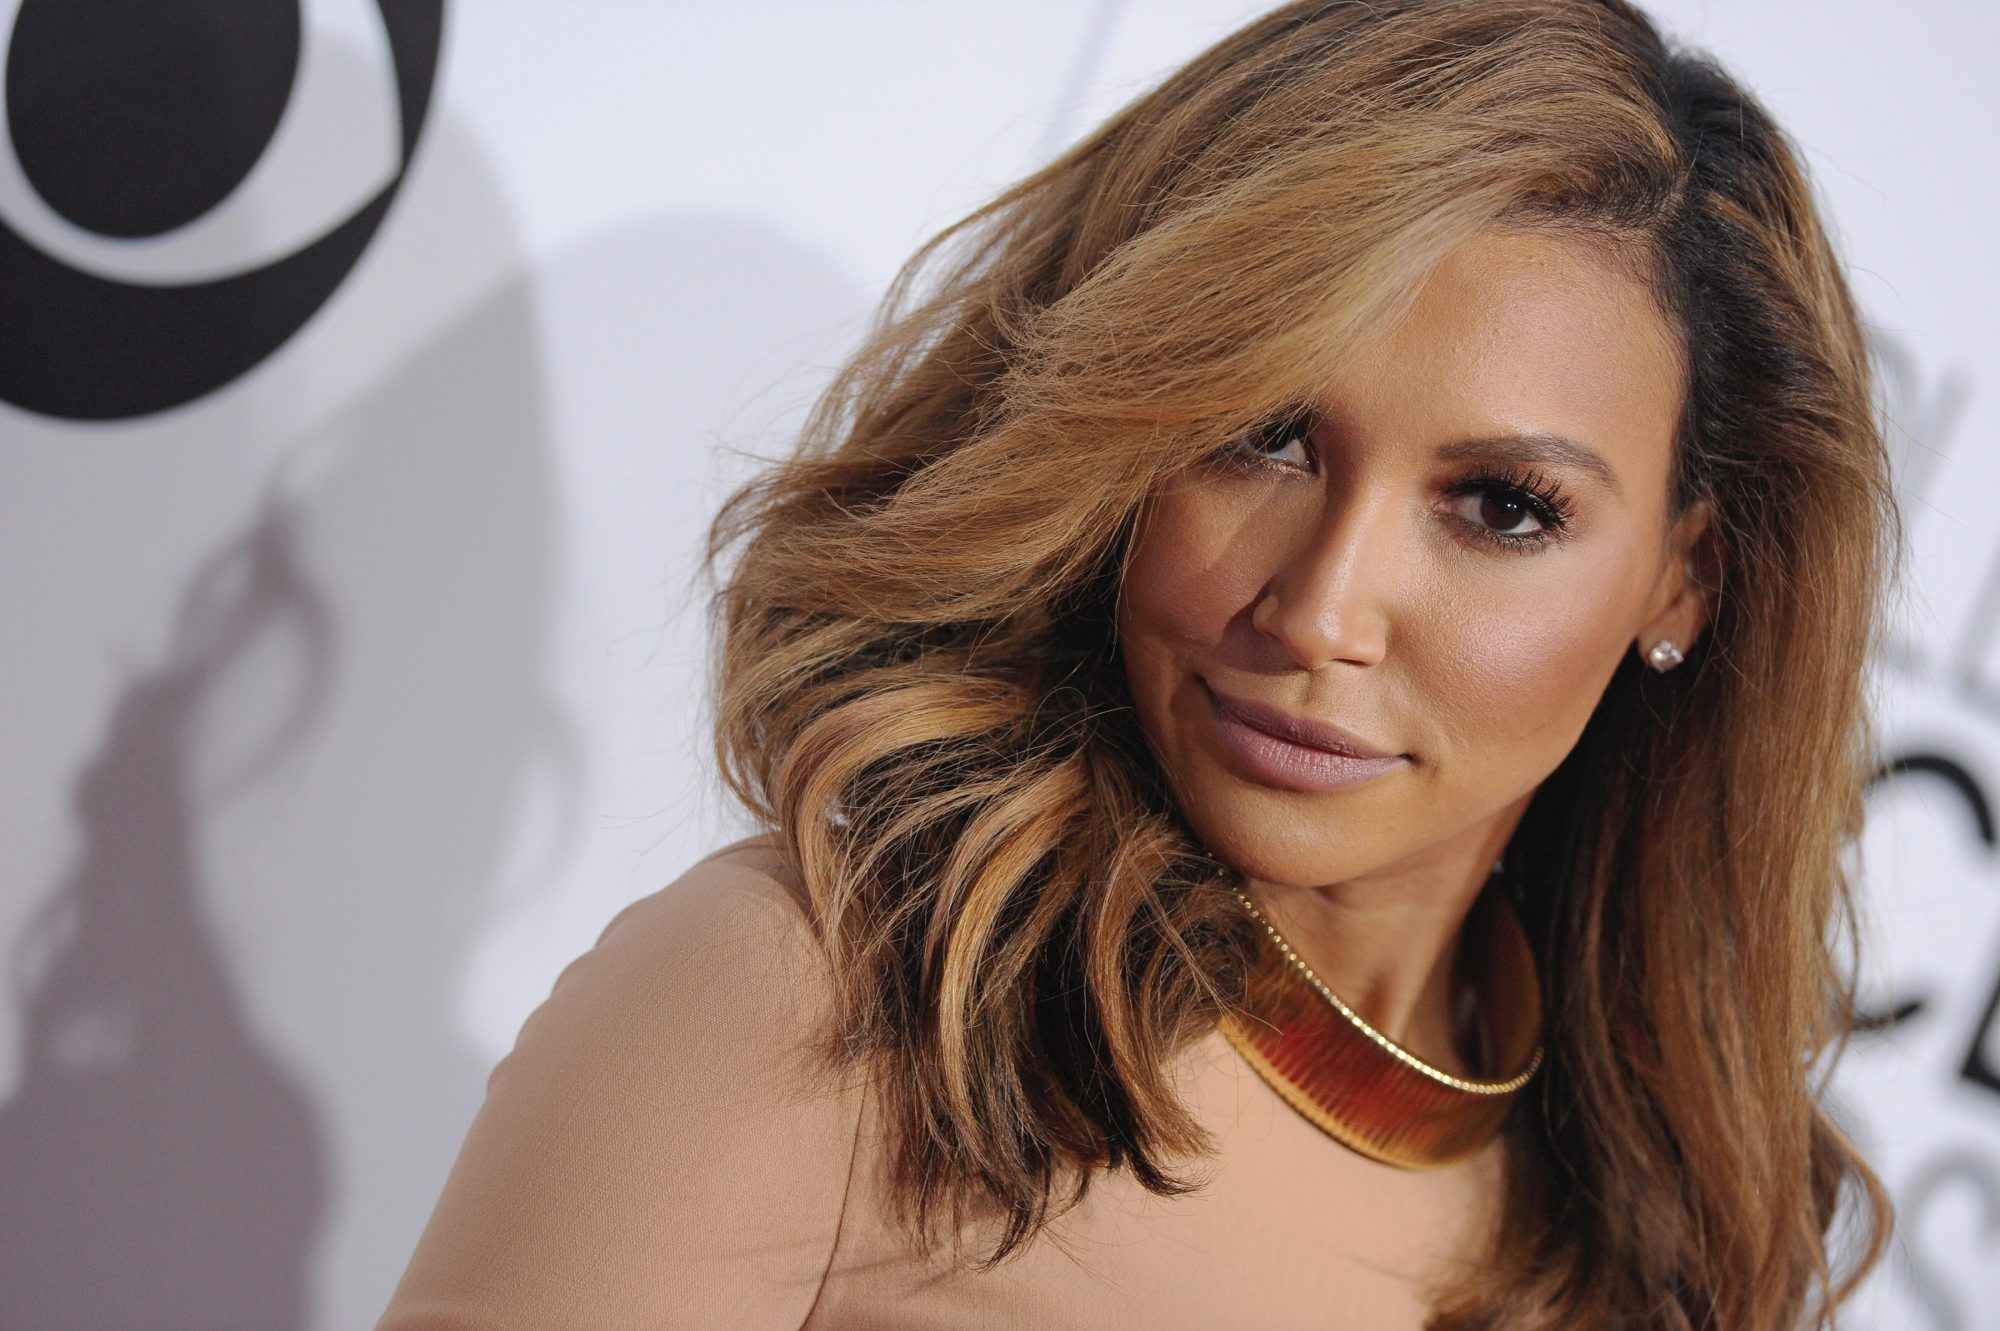 Full Naya Rivera Autopsy Report Reveals More Details About the Actress's Death